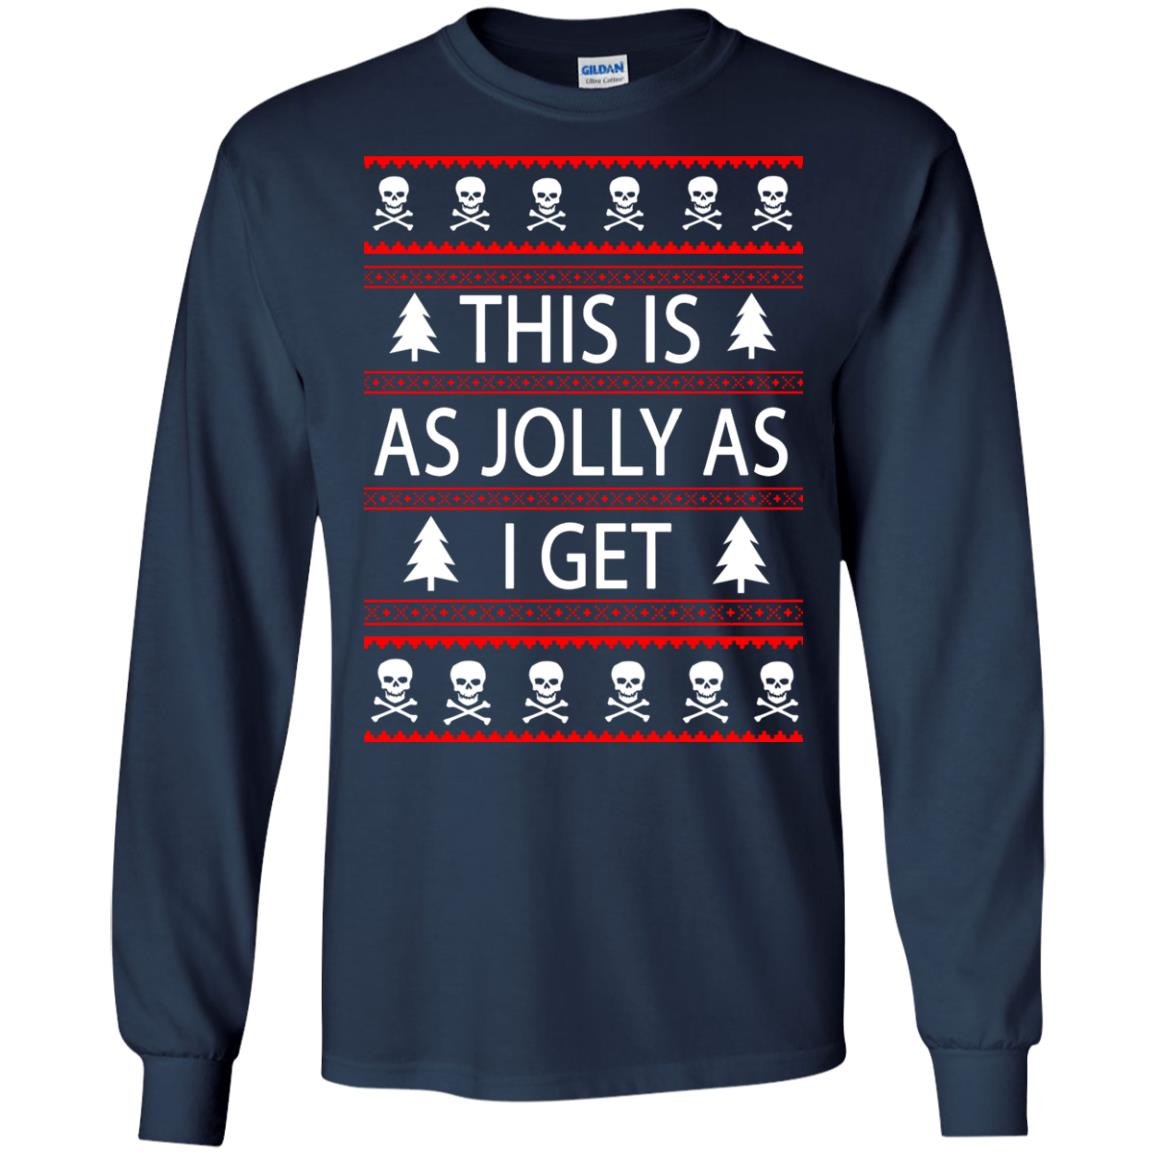 image 3160 - This Is as Jolly as I Get Emo Gothic Christmas Sweatshirts, Hoodie